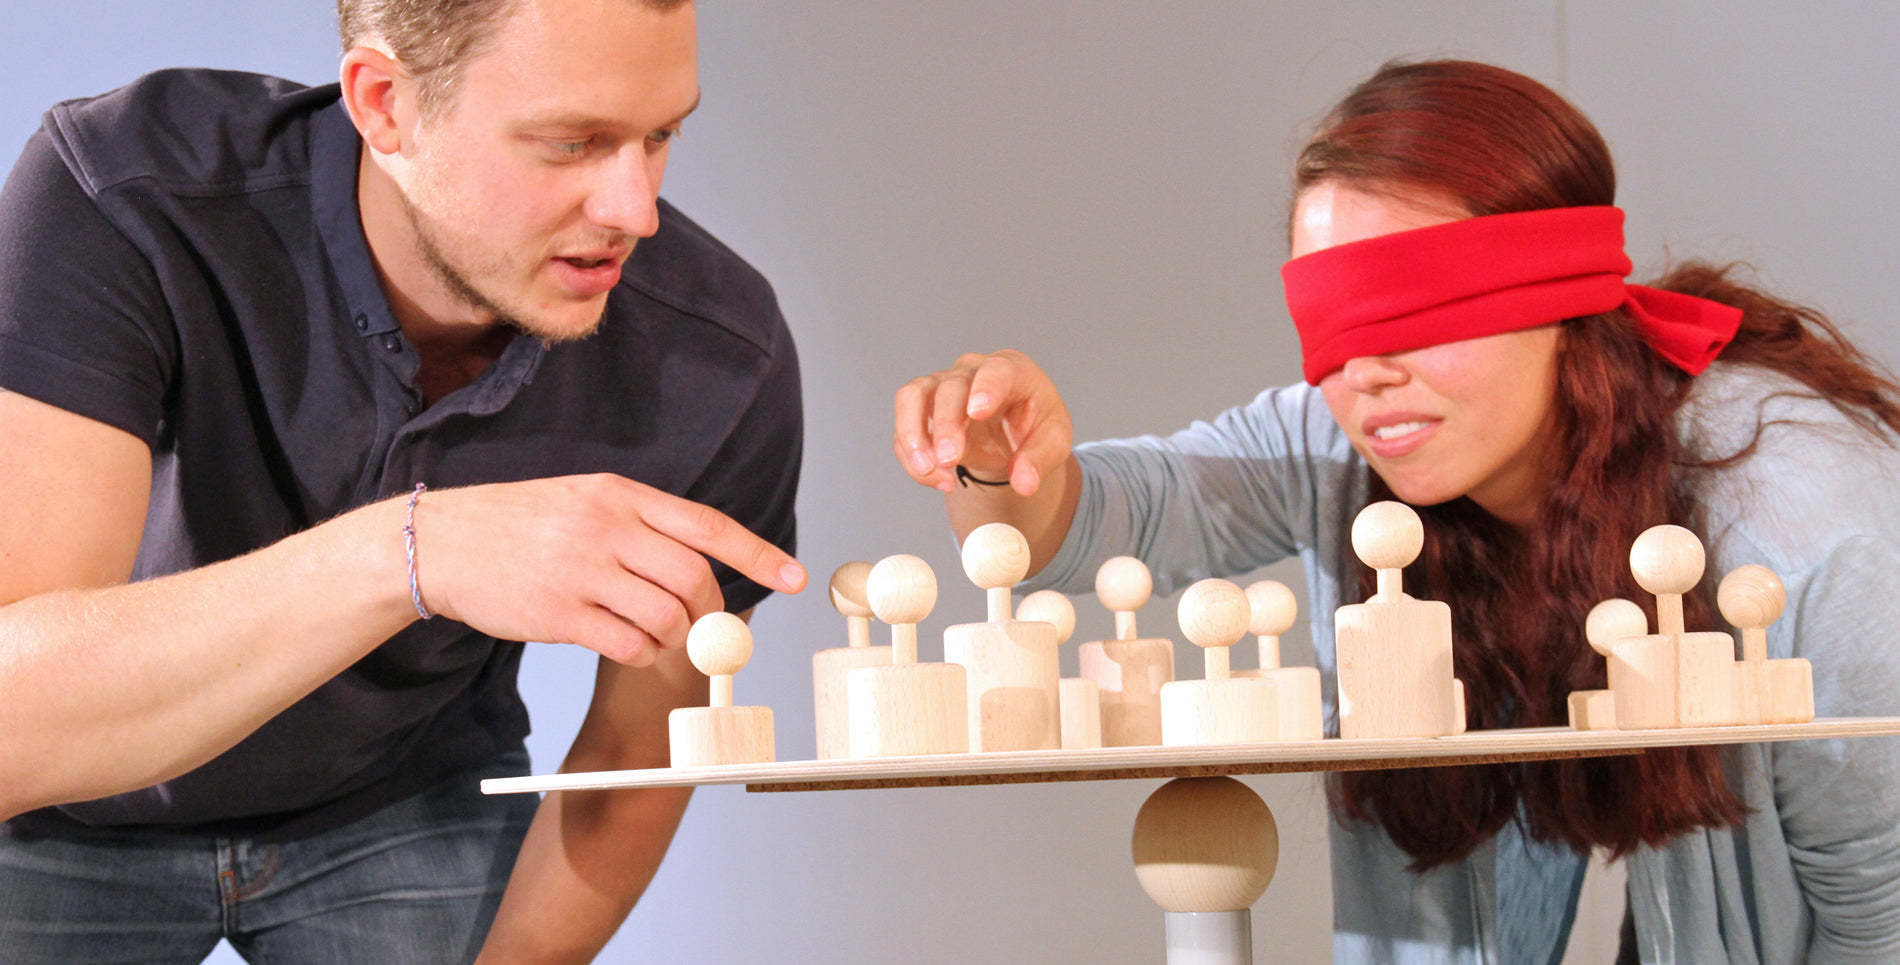 Two people, one blindfolded, use the balancing tool SysTeam from Metalog Tools